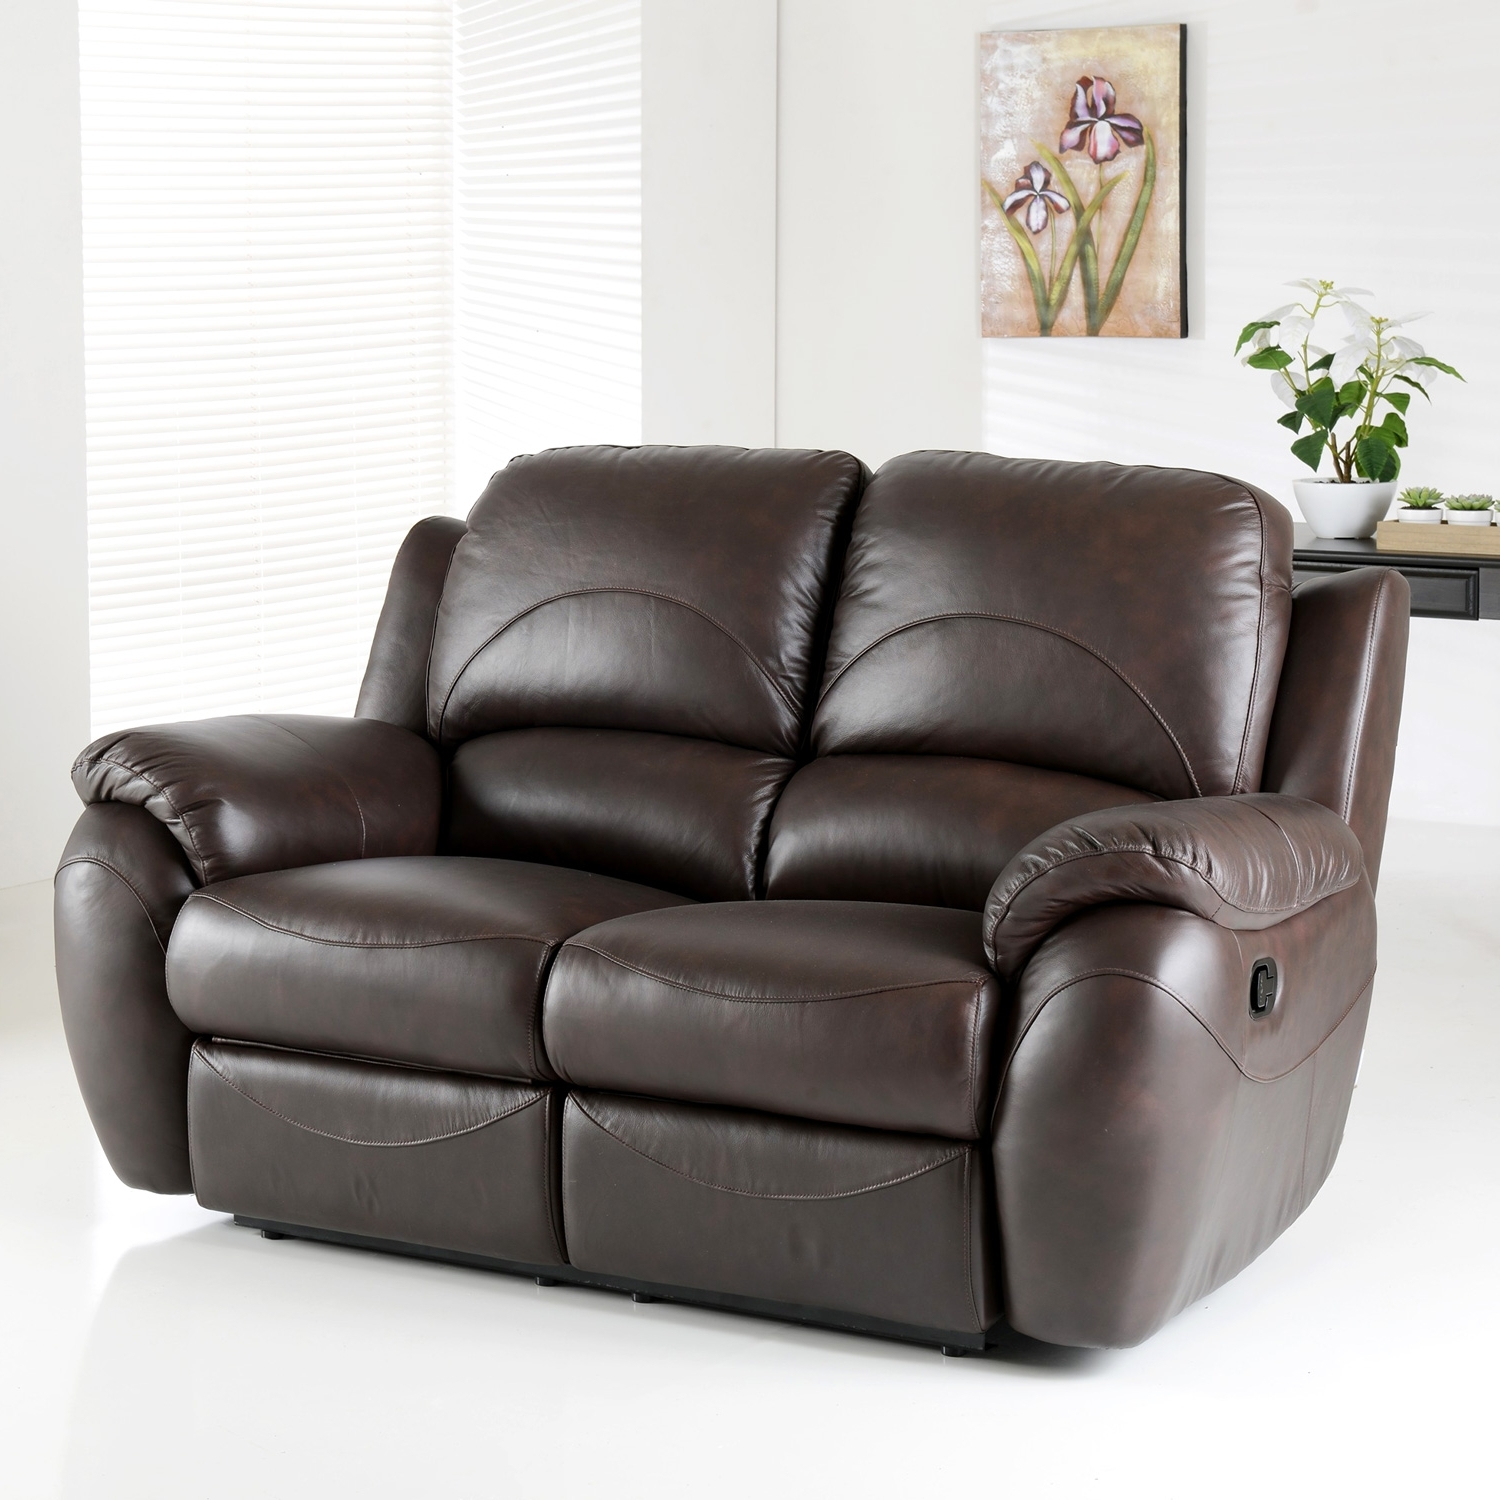 Craigslist Leather Sofas Within Best And Newest Cheap Reclining Loveseat With Console Used Leather Recliner Chair (View 7 of 15)